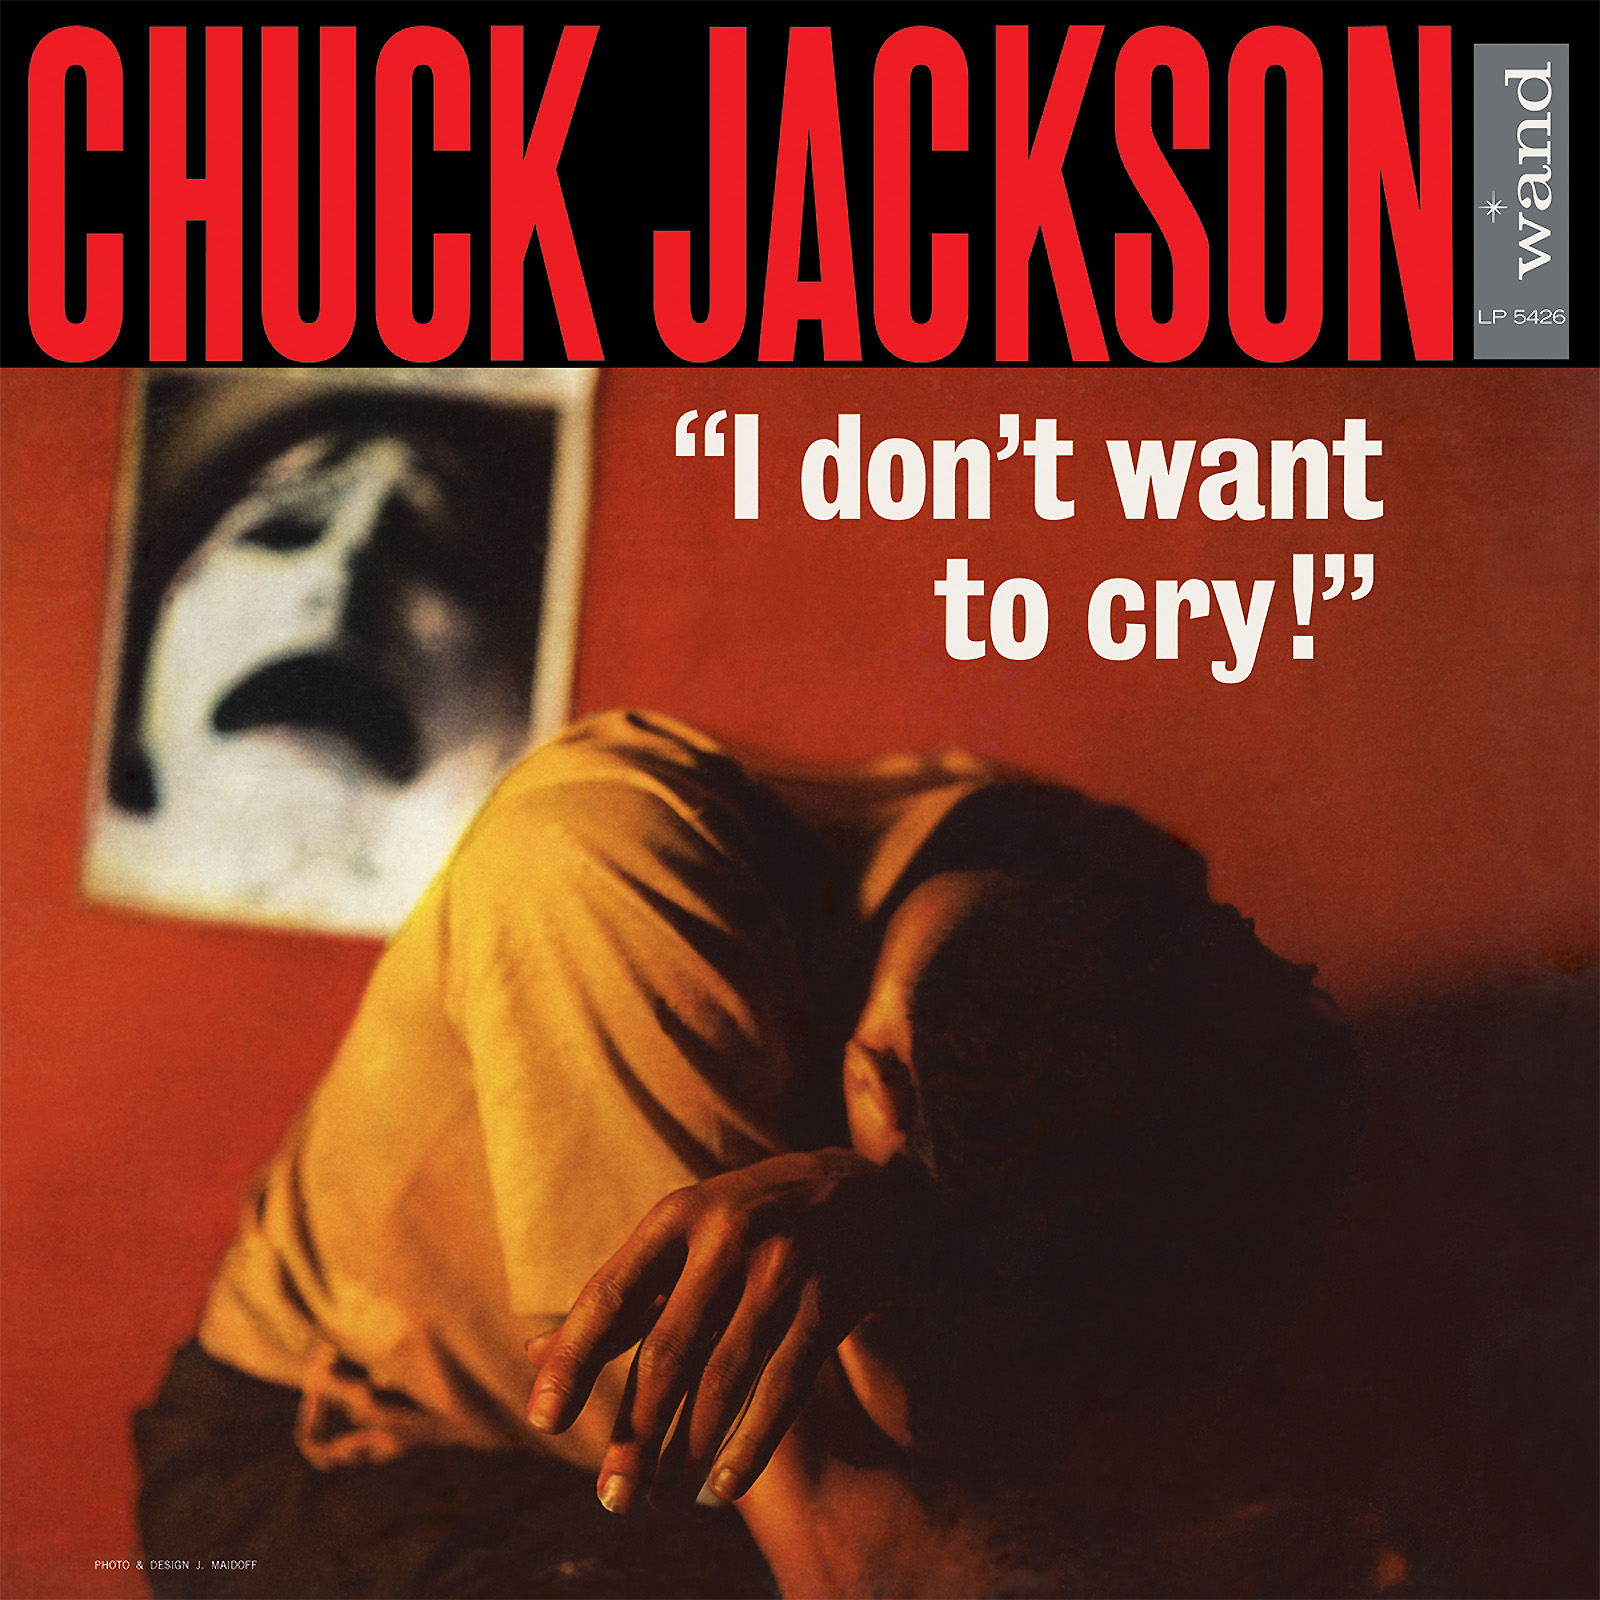 Jackson, Chuck - I Dont Want To Cry - LP